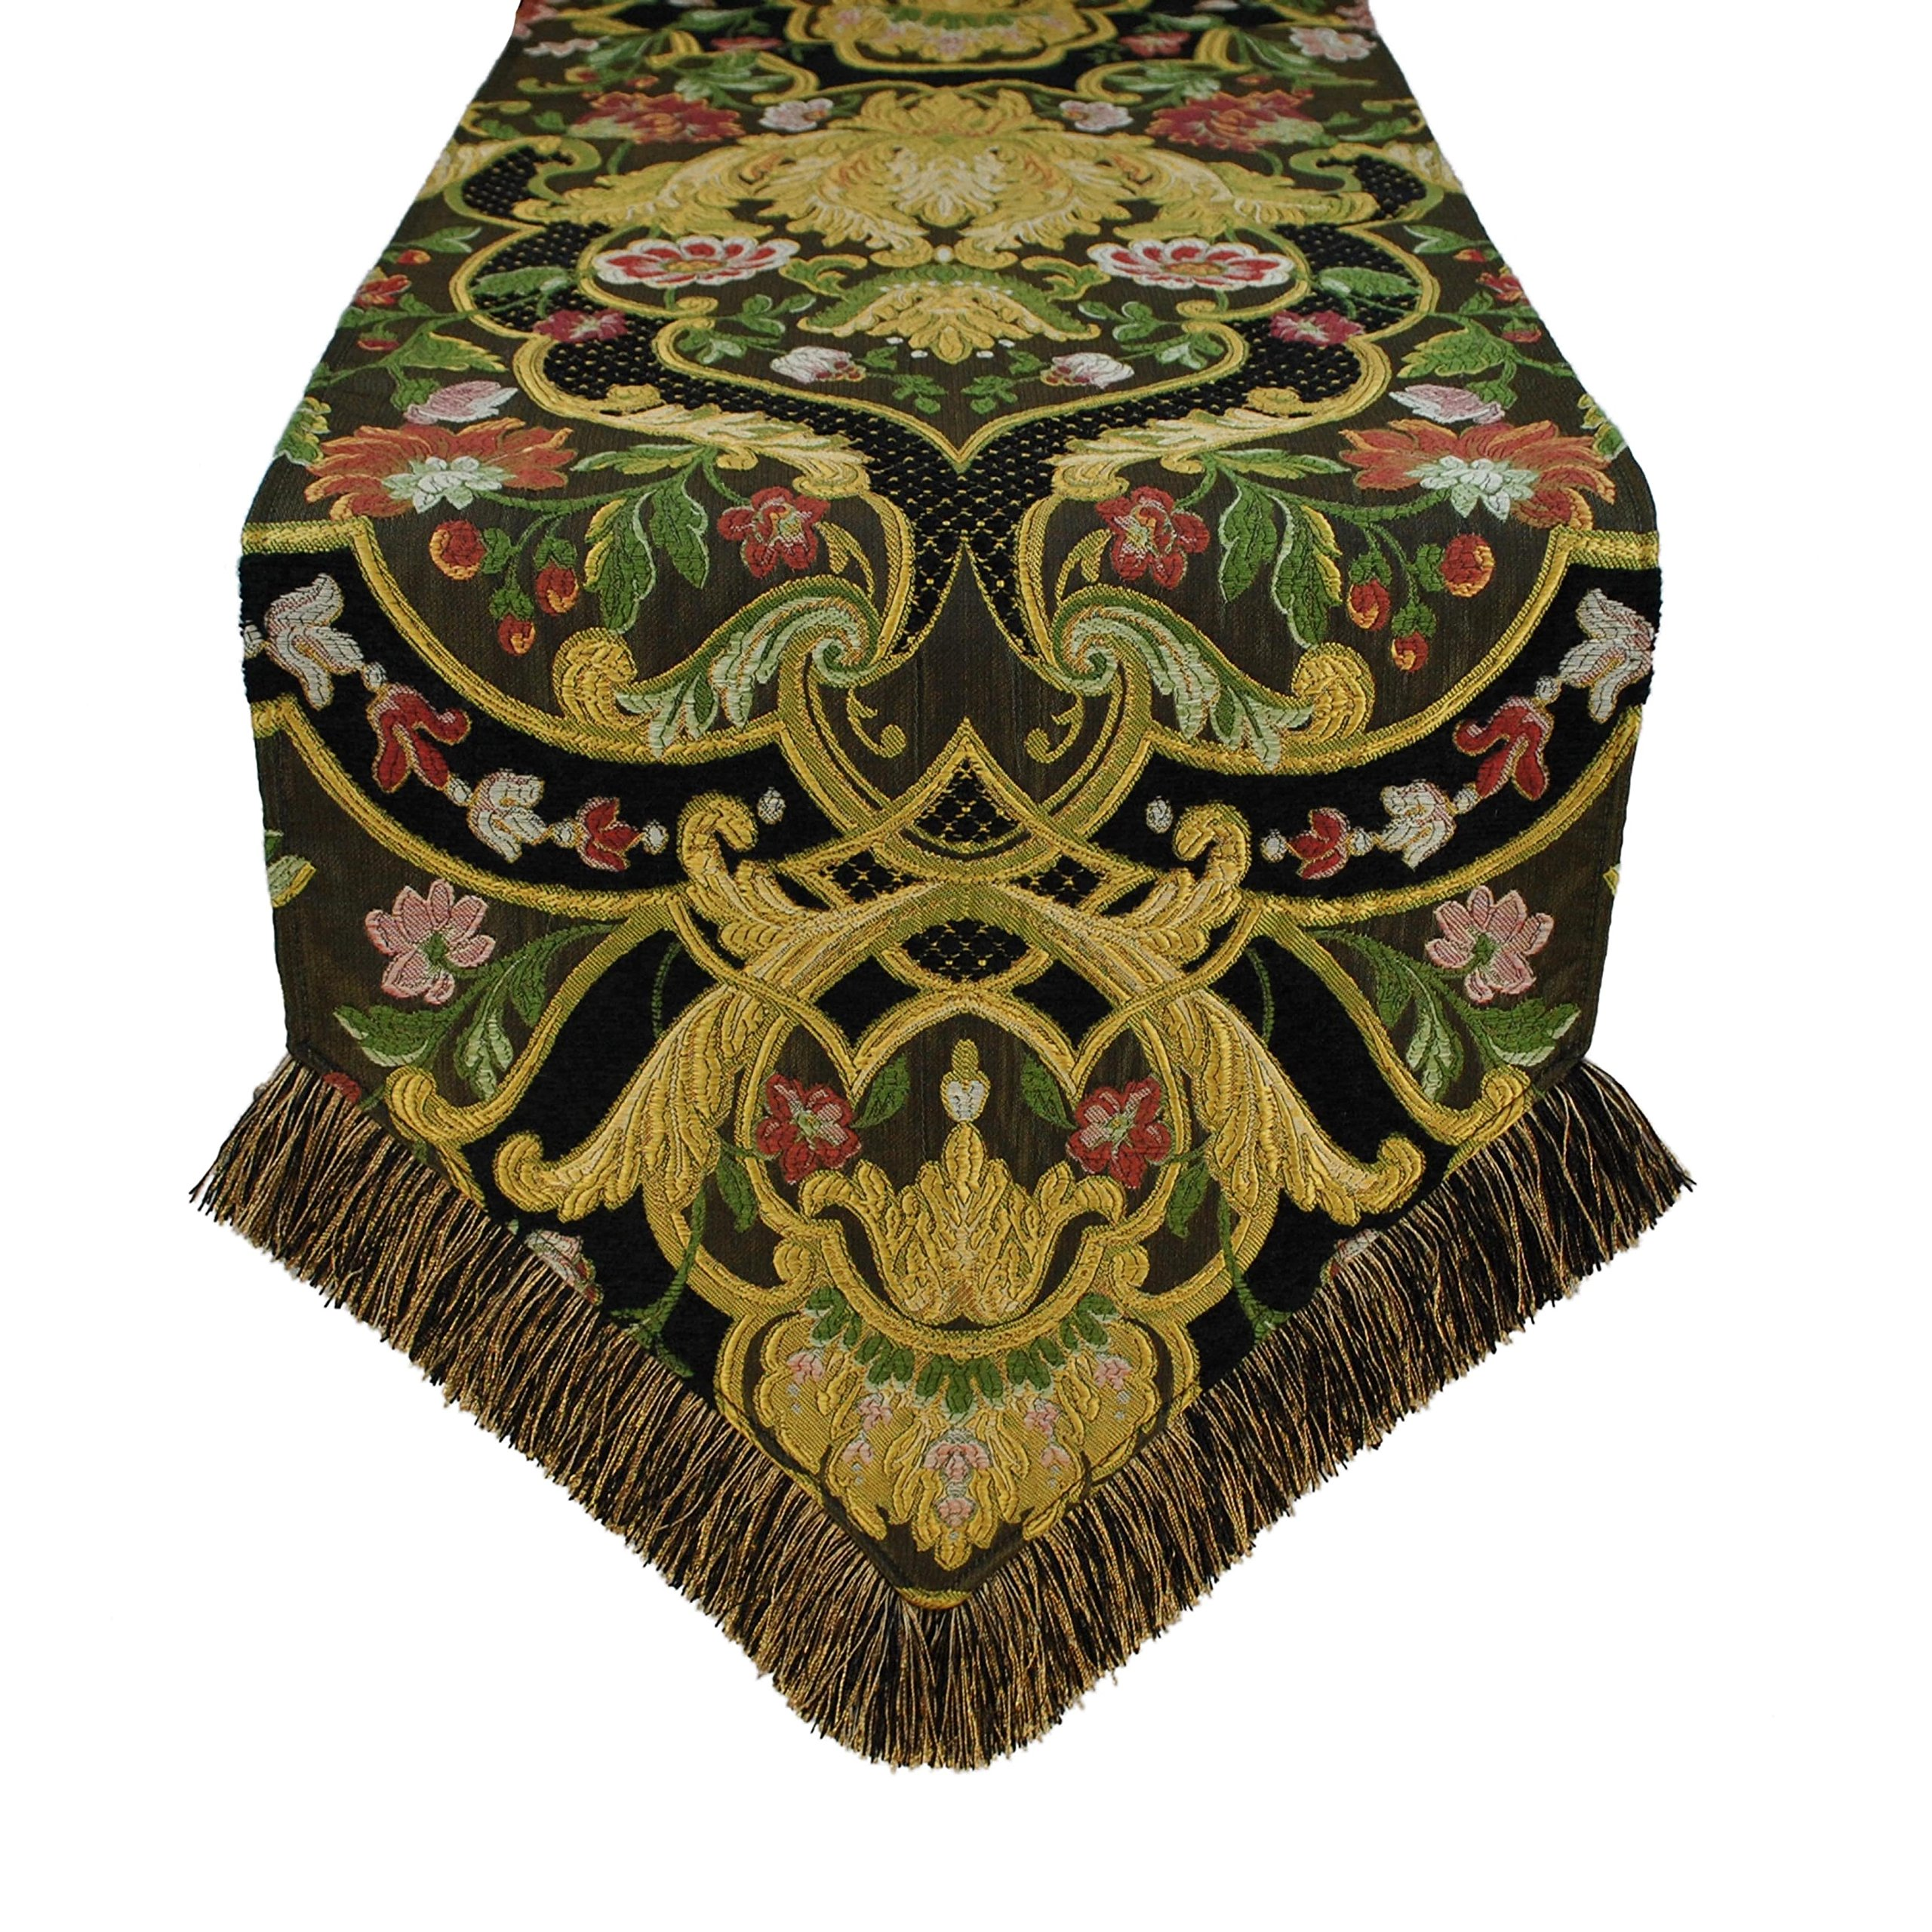 Austin Horn Classics Gustone Luxury Table Runner Design, Abstract, Graphic, Floral 13 x 108